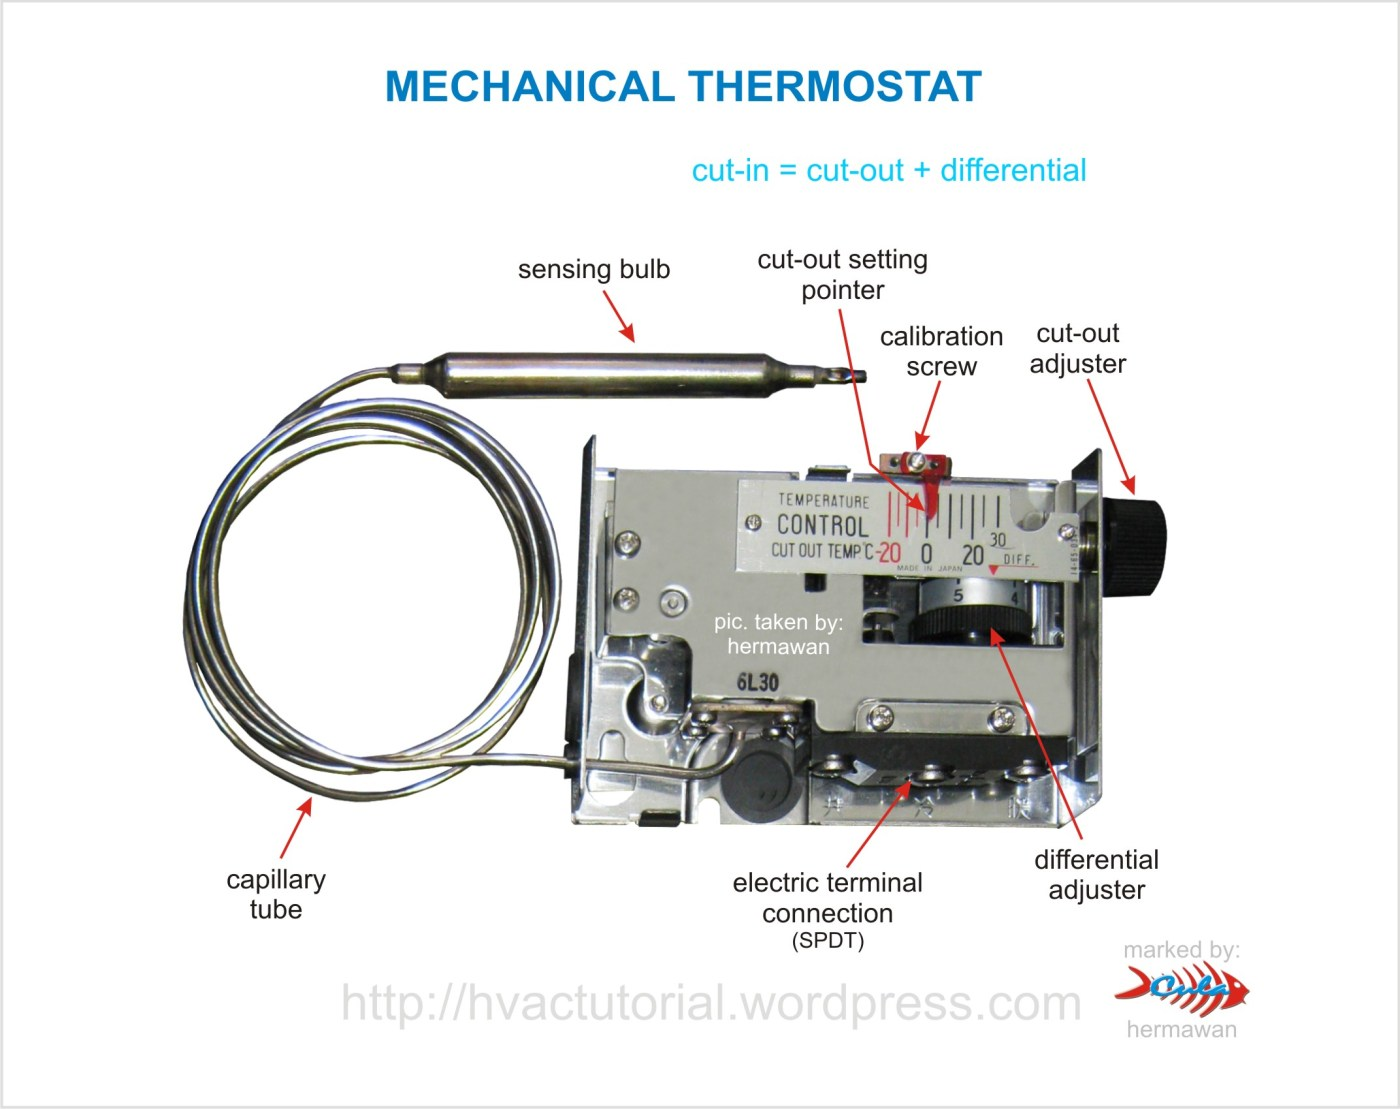 small resolution of mechanical thermostat hermawan s blog refrigeration and air conditioning systems